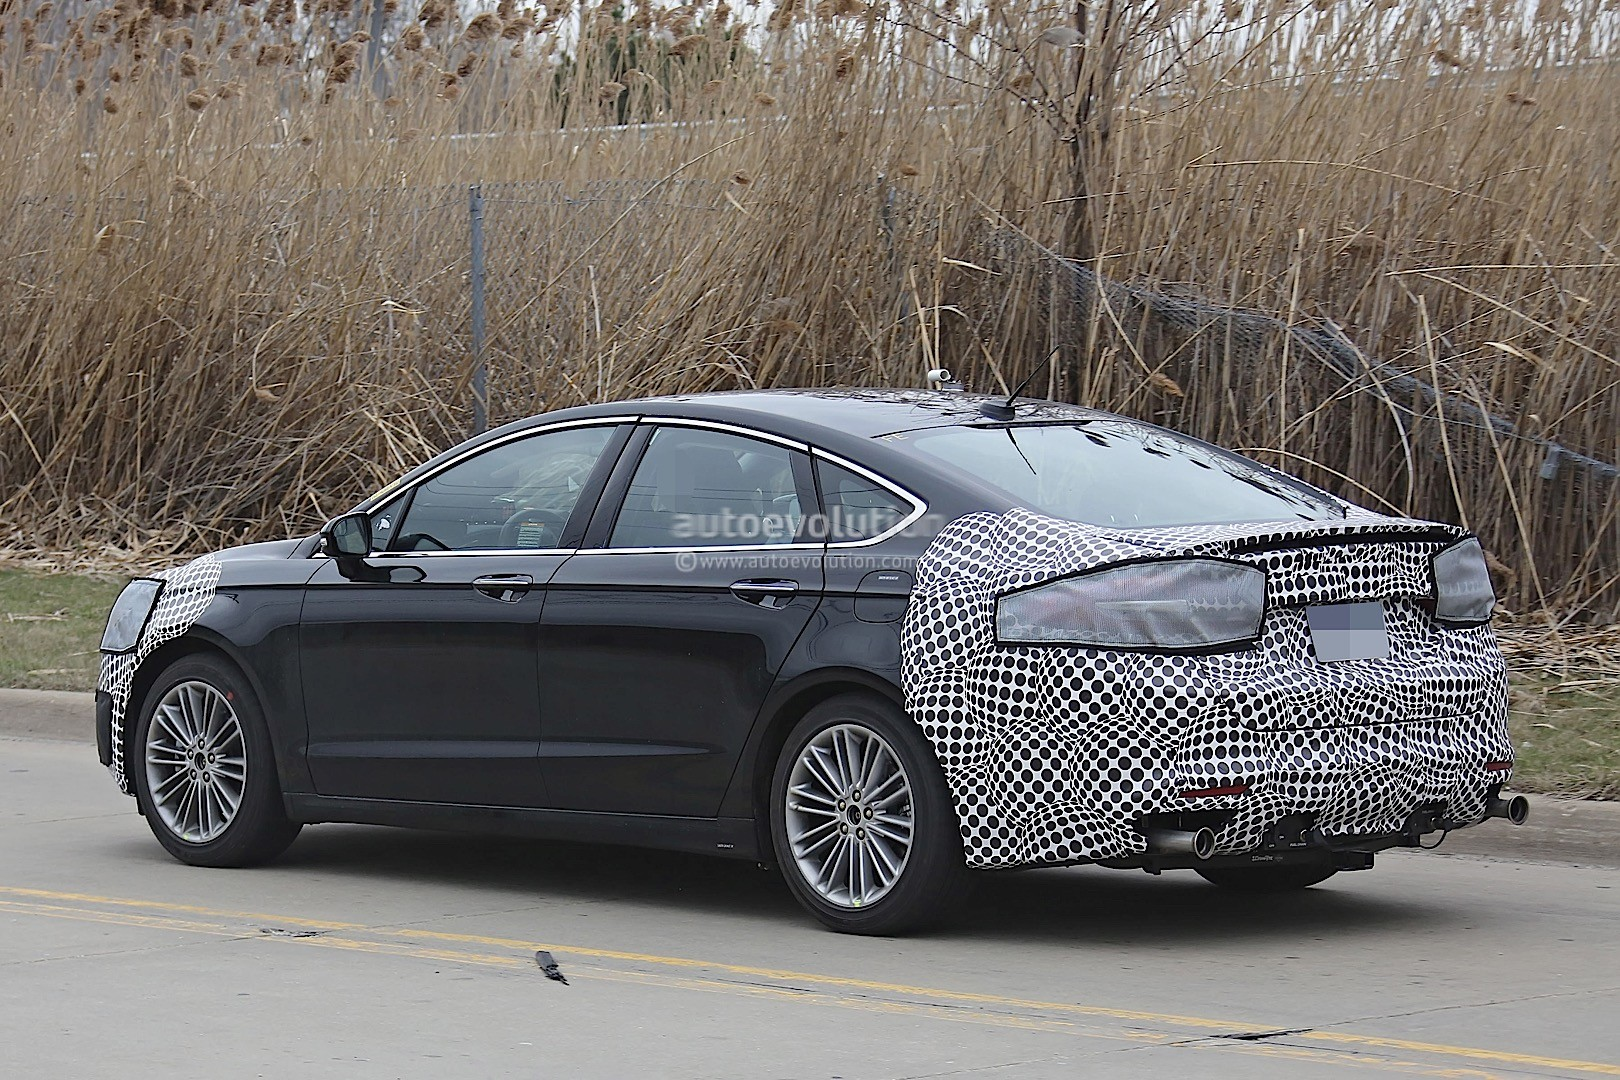 2016 Mustang Mach 1 >> 2017 Ford Fusion (Mondeo Facelift) Spied - autoevolution